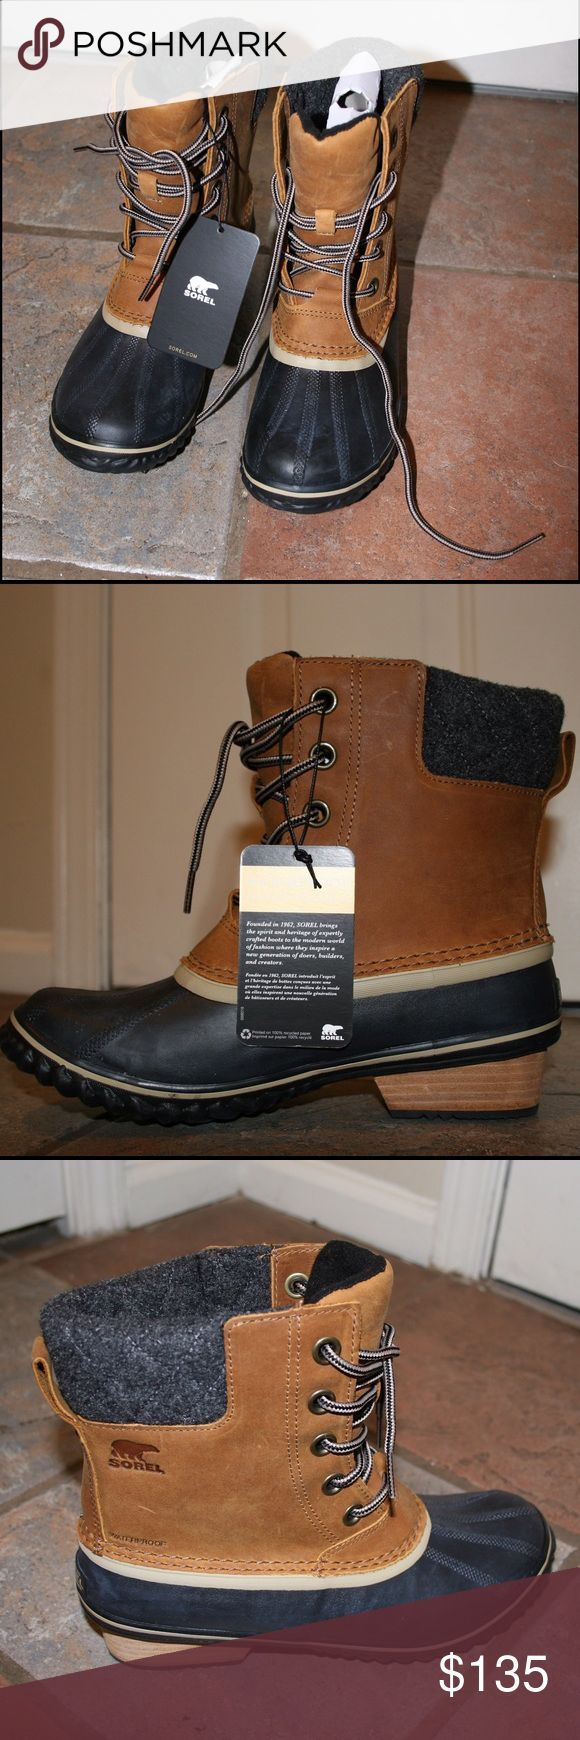 Sorel - Women's Slimpack ll Lace Duck Boot Fully seam-sealed and waterproof boot featuring a full-grain leather upper, a leather-wrapped heel, 100g insulation, vulcanized rubber and a super cozy micro fleece lining. NEVER BEEN WORN & BRAND NEW. I've worn 8.5 in sorels before but these were too small so I'm selling and getting a size 9. These are super cute on and great for fall and winter weather! Sorel Shoes Winter & Rain Boots